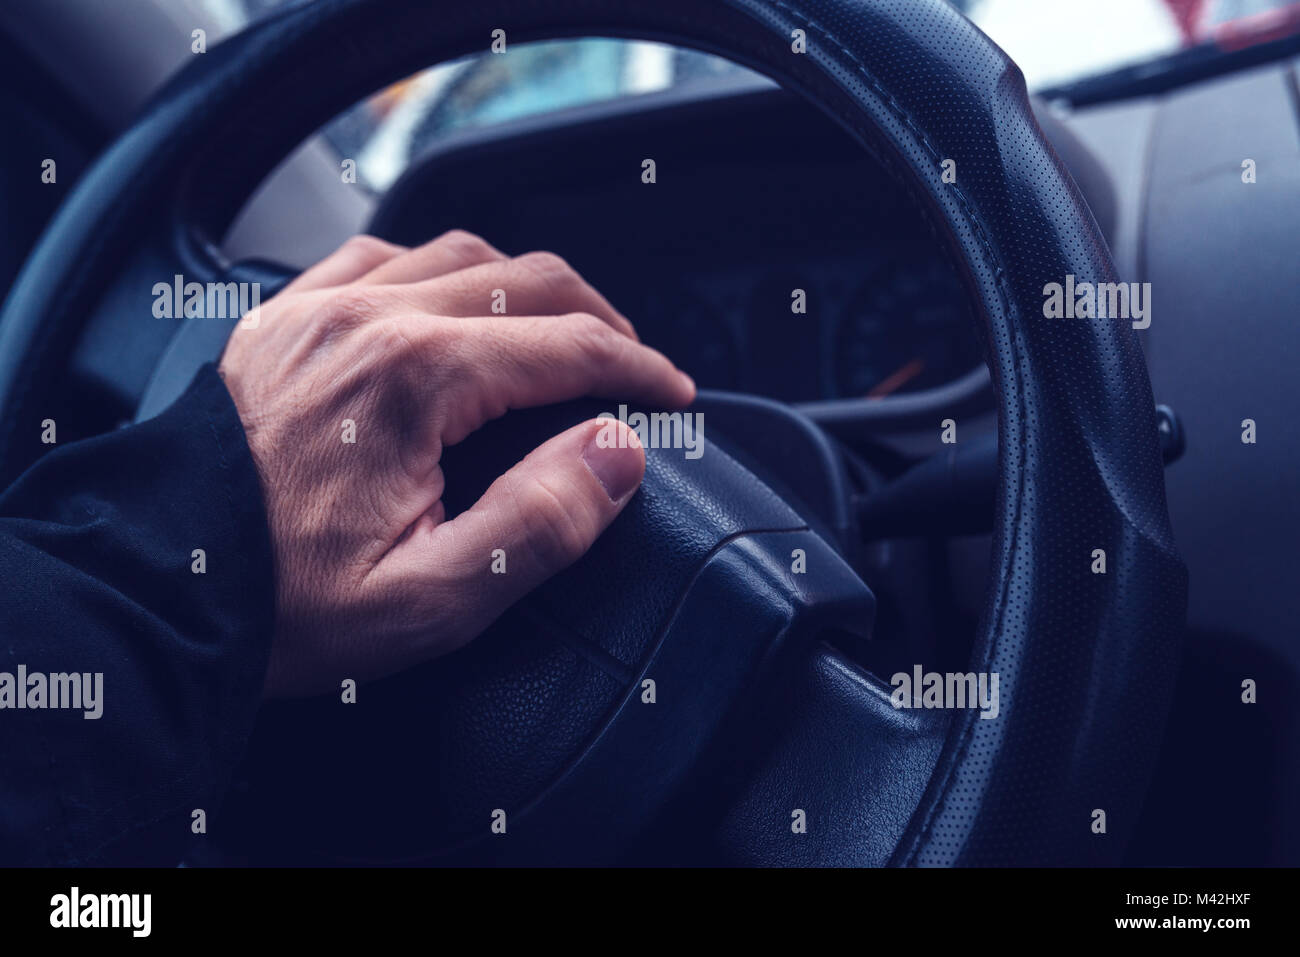 Male hand honking the car horn, man driving vehicle and beeping, ultra violey toned shadows - Stock Image